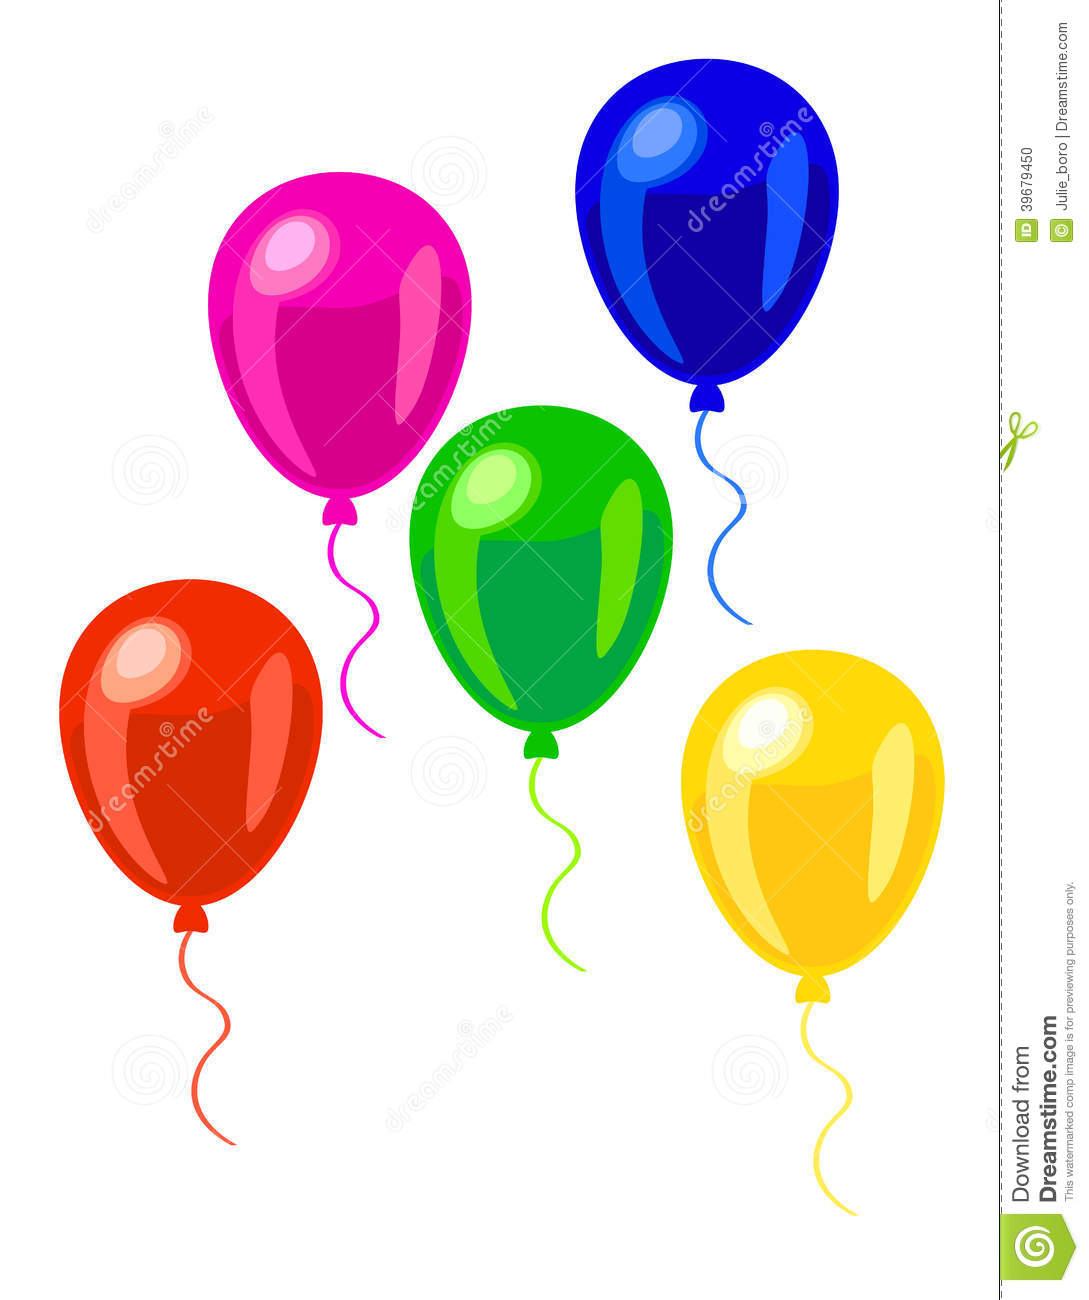 Green and blue balloons - Pink Green Red Blue And Yellow Balloons